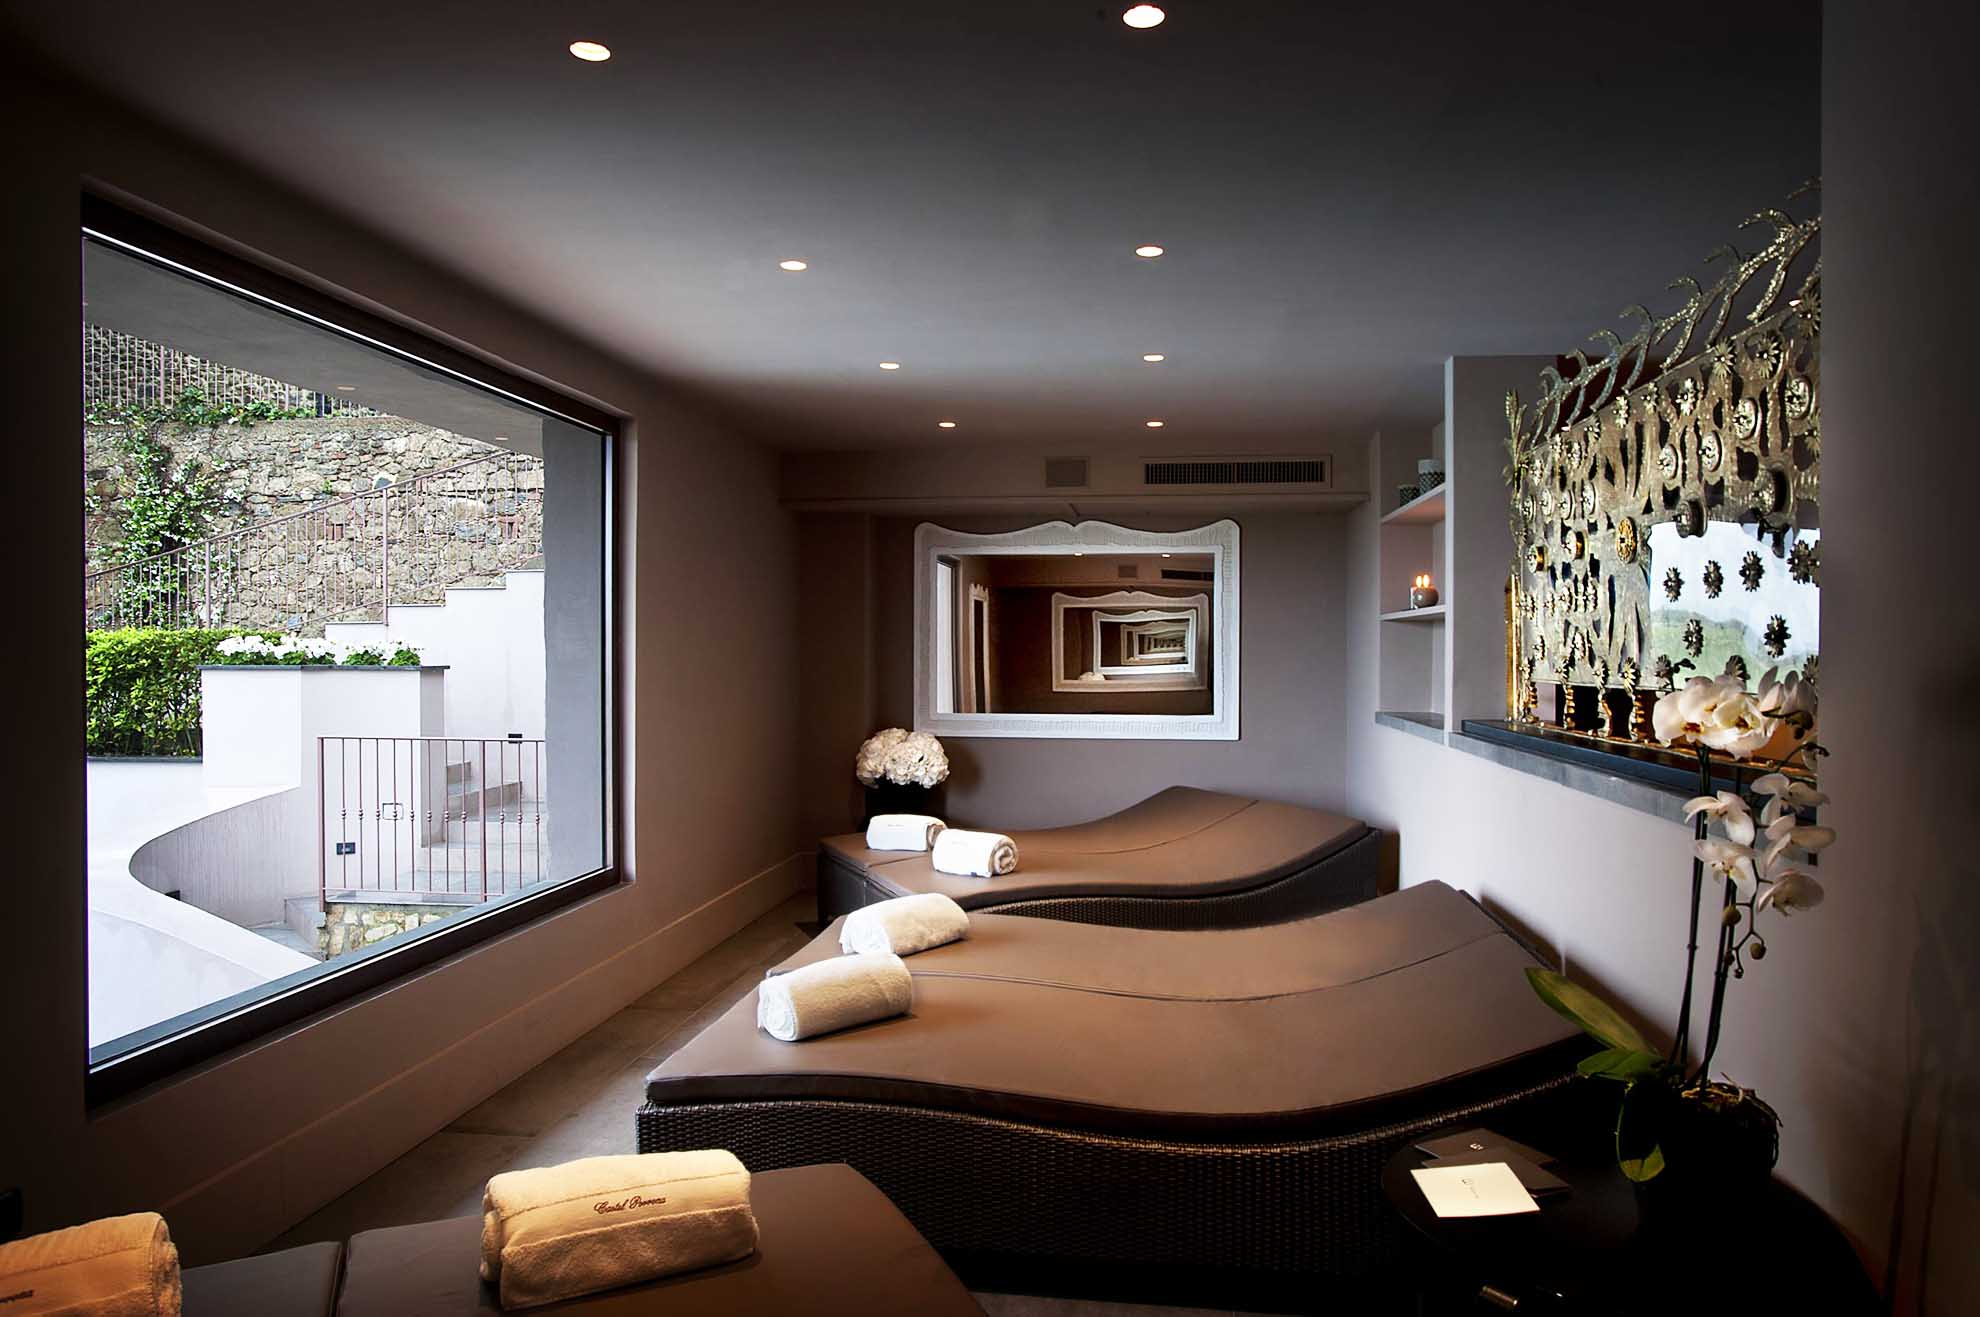 Spa in Toscana